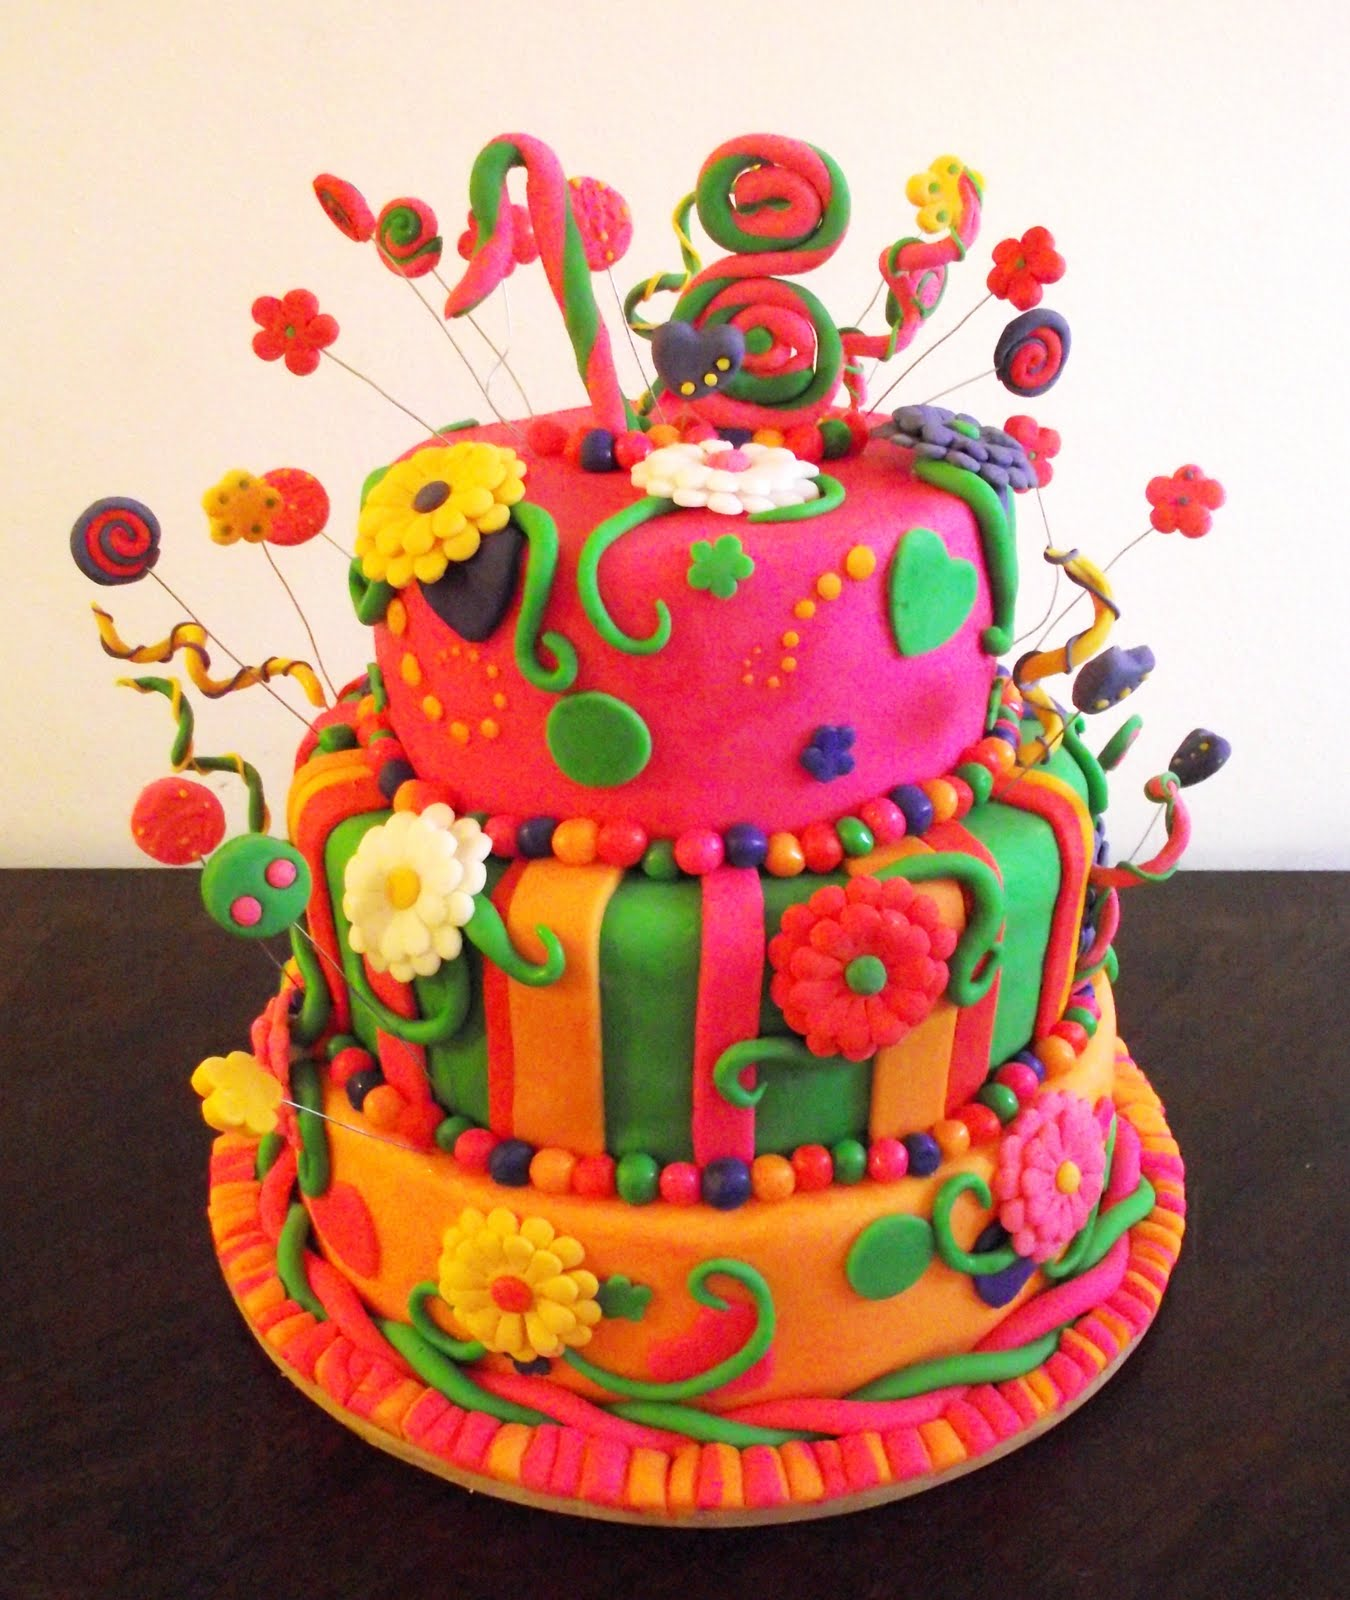 Torta colorida de 3 pisos